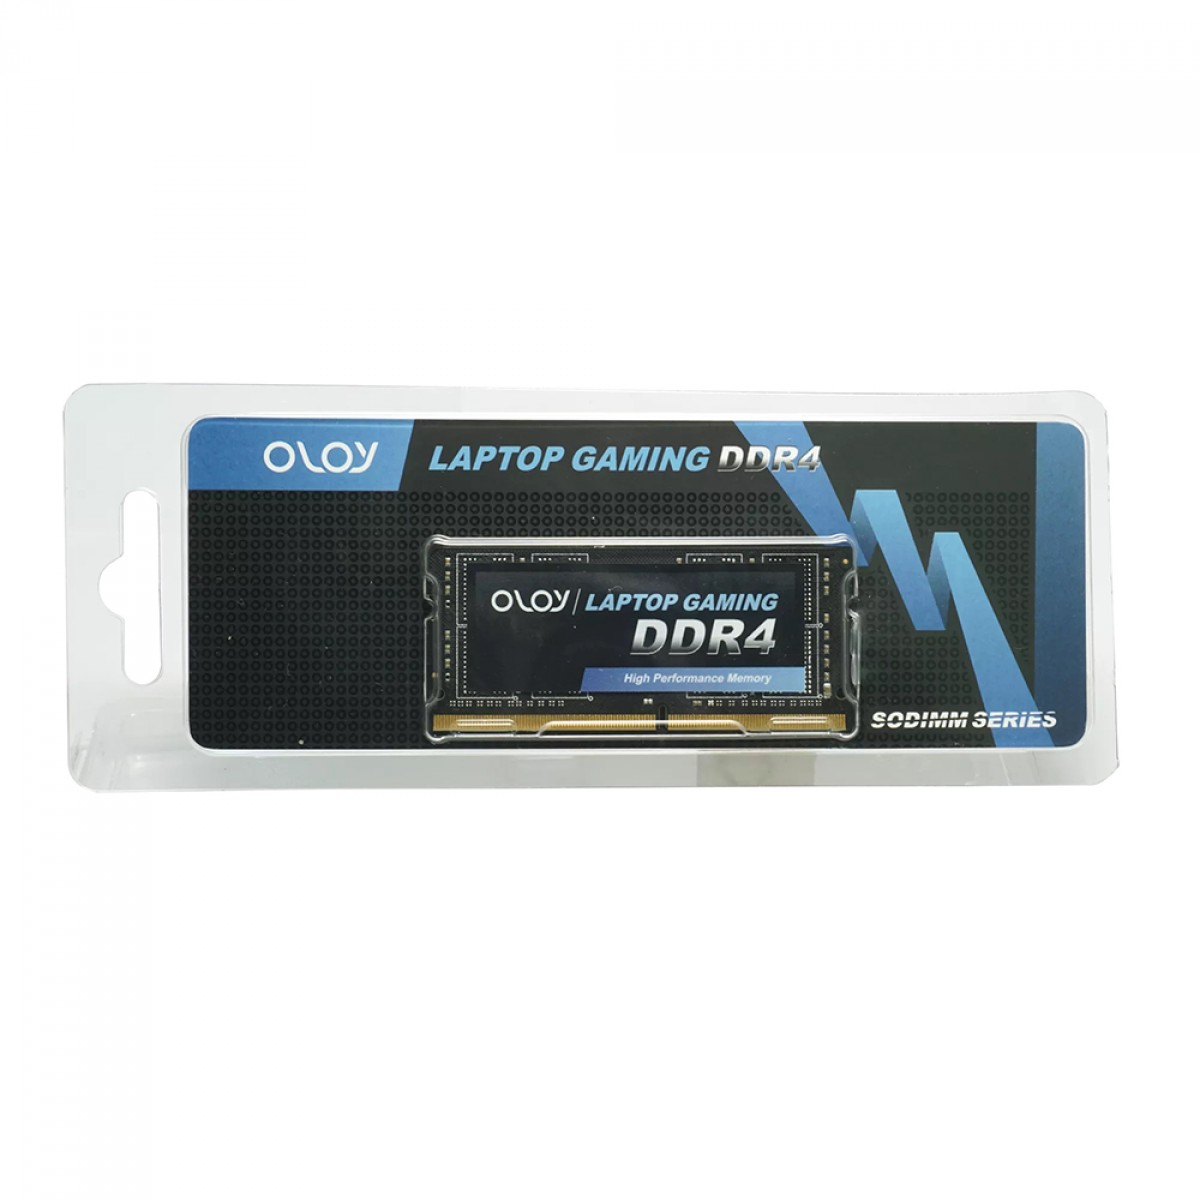 Memória Notebook DDR4 Oloy Laptop Gaming, 32GB, 2666MHZ, MD4S322619MZSC